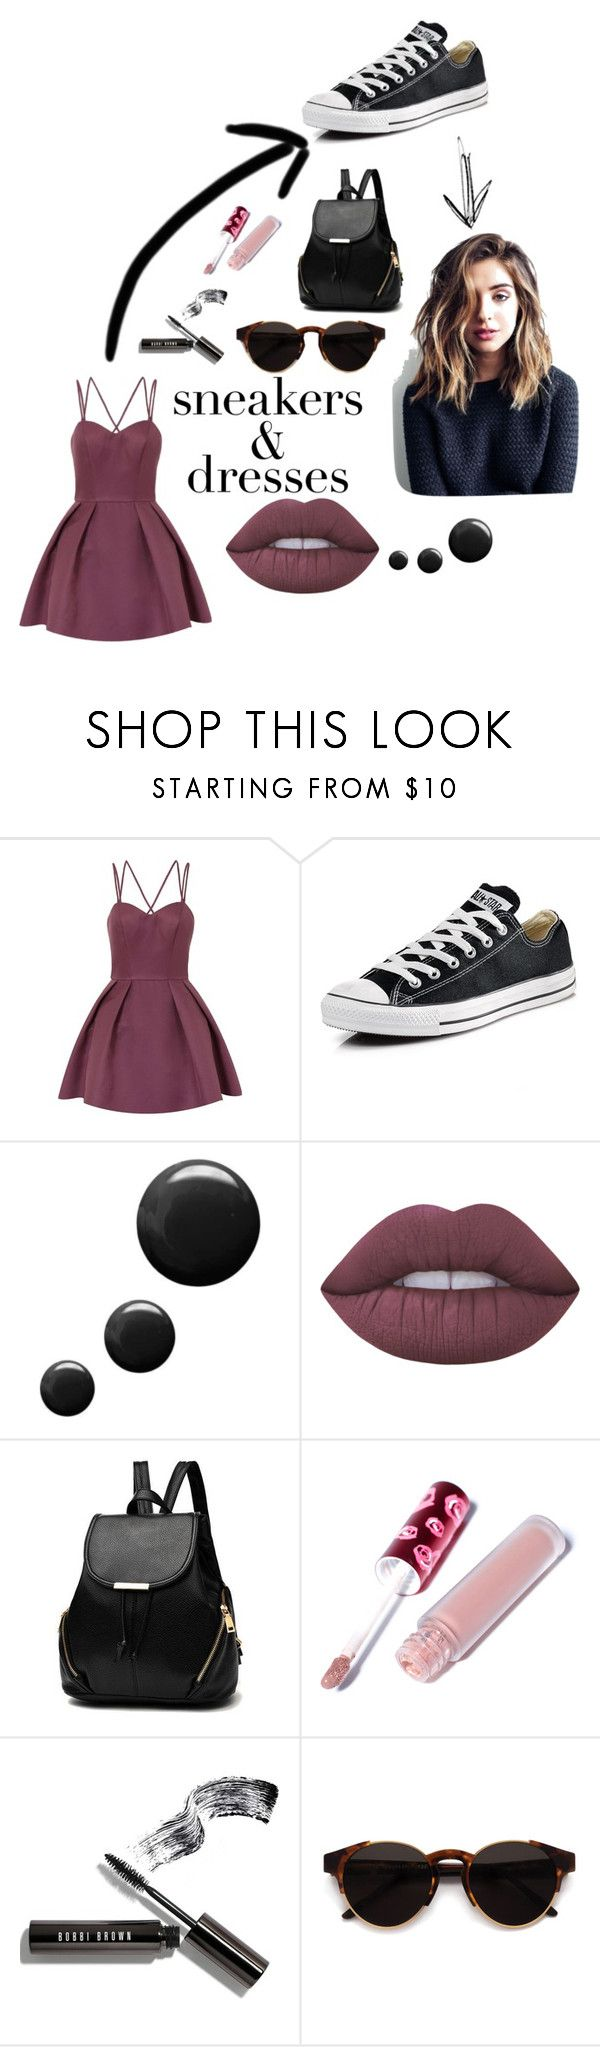 """"" by ally-bel ❤ liked on Polyvore featuring Chi Chi, Converse, Topshop, Lime Crime, Bobbi Brown Cosmetics and RetroSuperFuture"